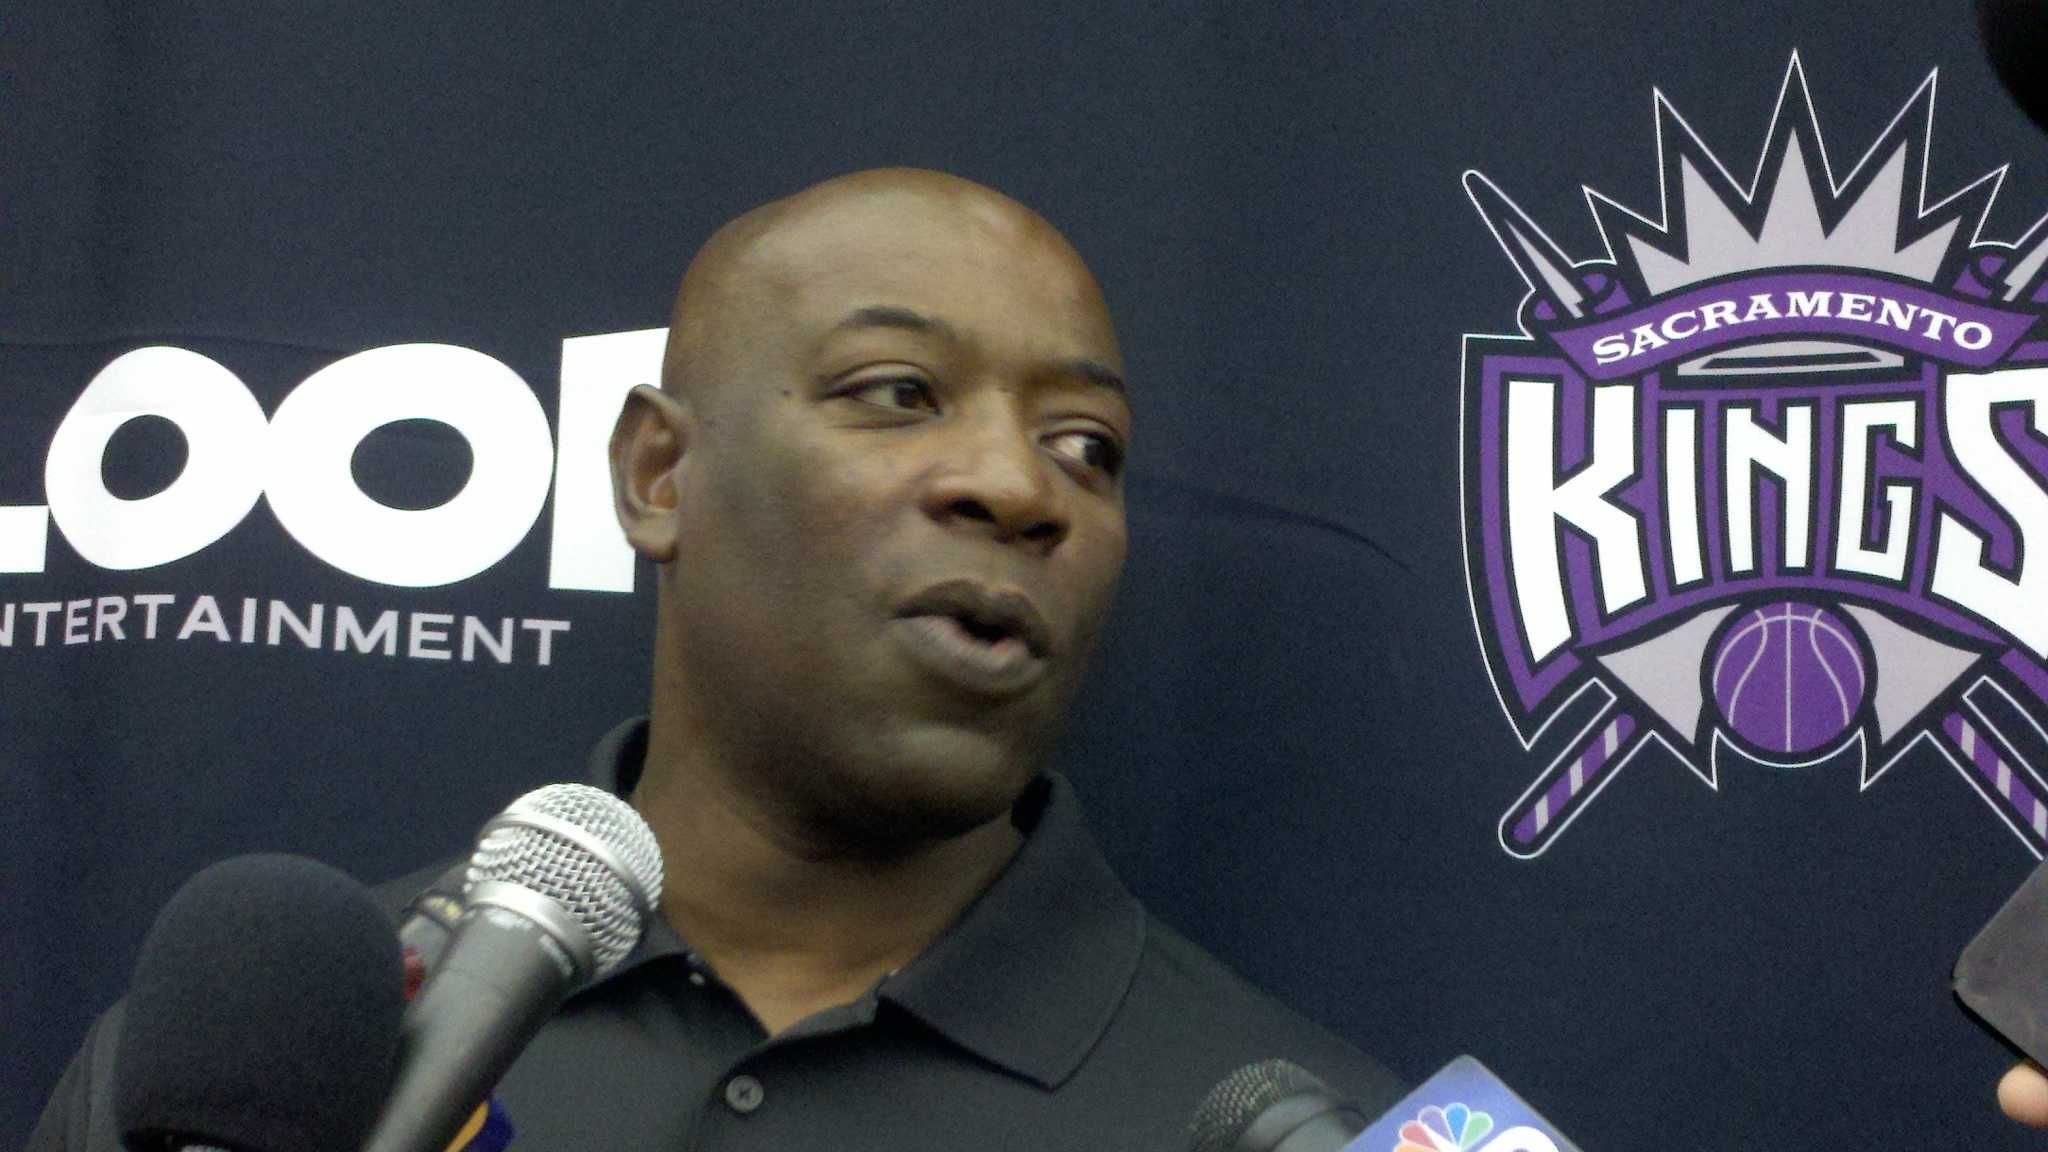 Sacramento Kings head coach Keith Smart (file photo).